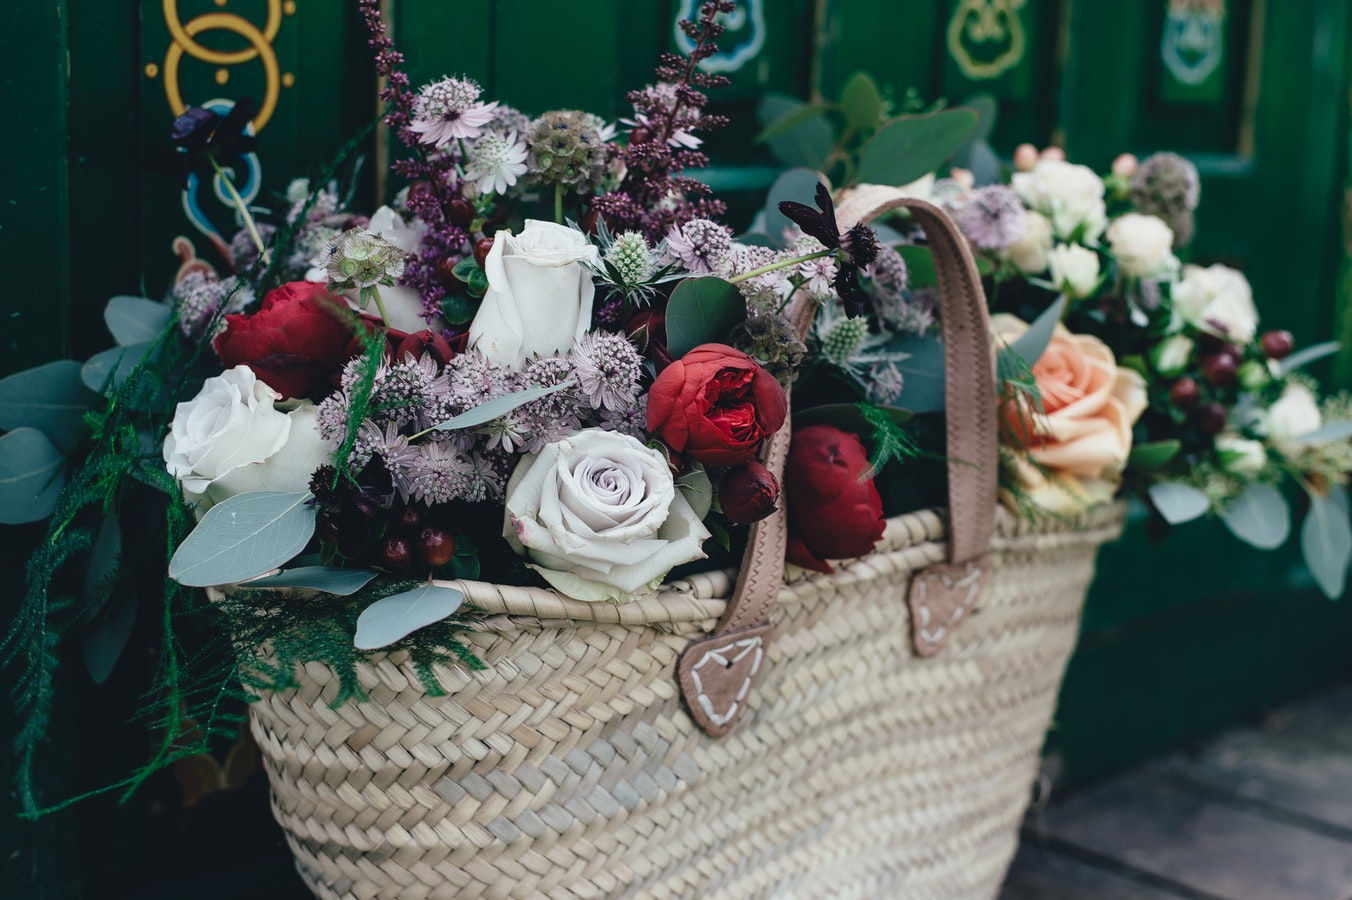 Top quality flowers and how to get them in Dubai